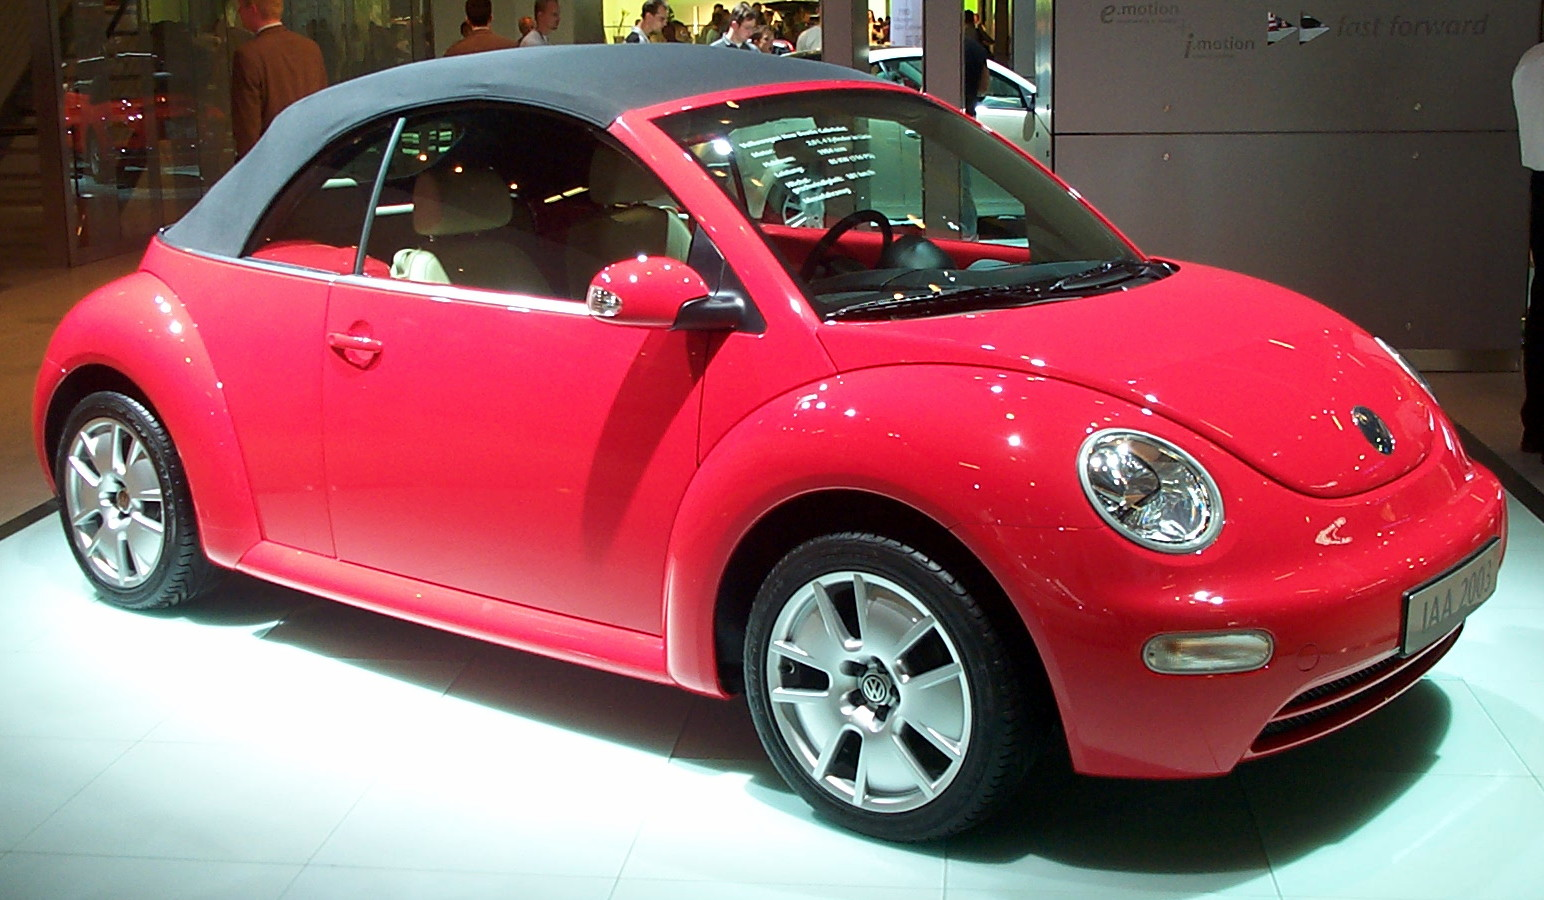 file volkswagen new beetle cabriolet red iaa wikimedia commons. Black Bedroom Furniture Sets. Home Design Ideas